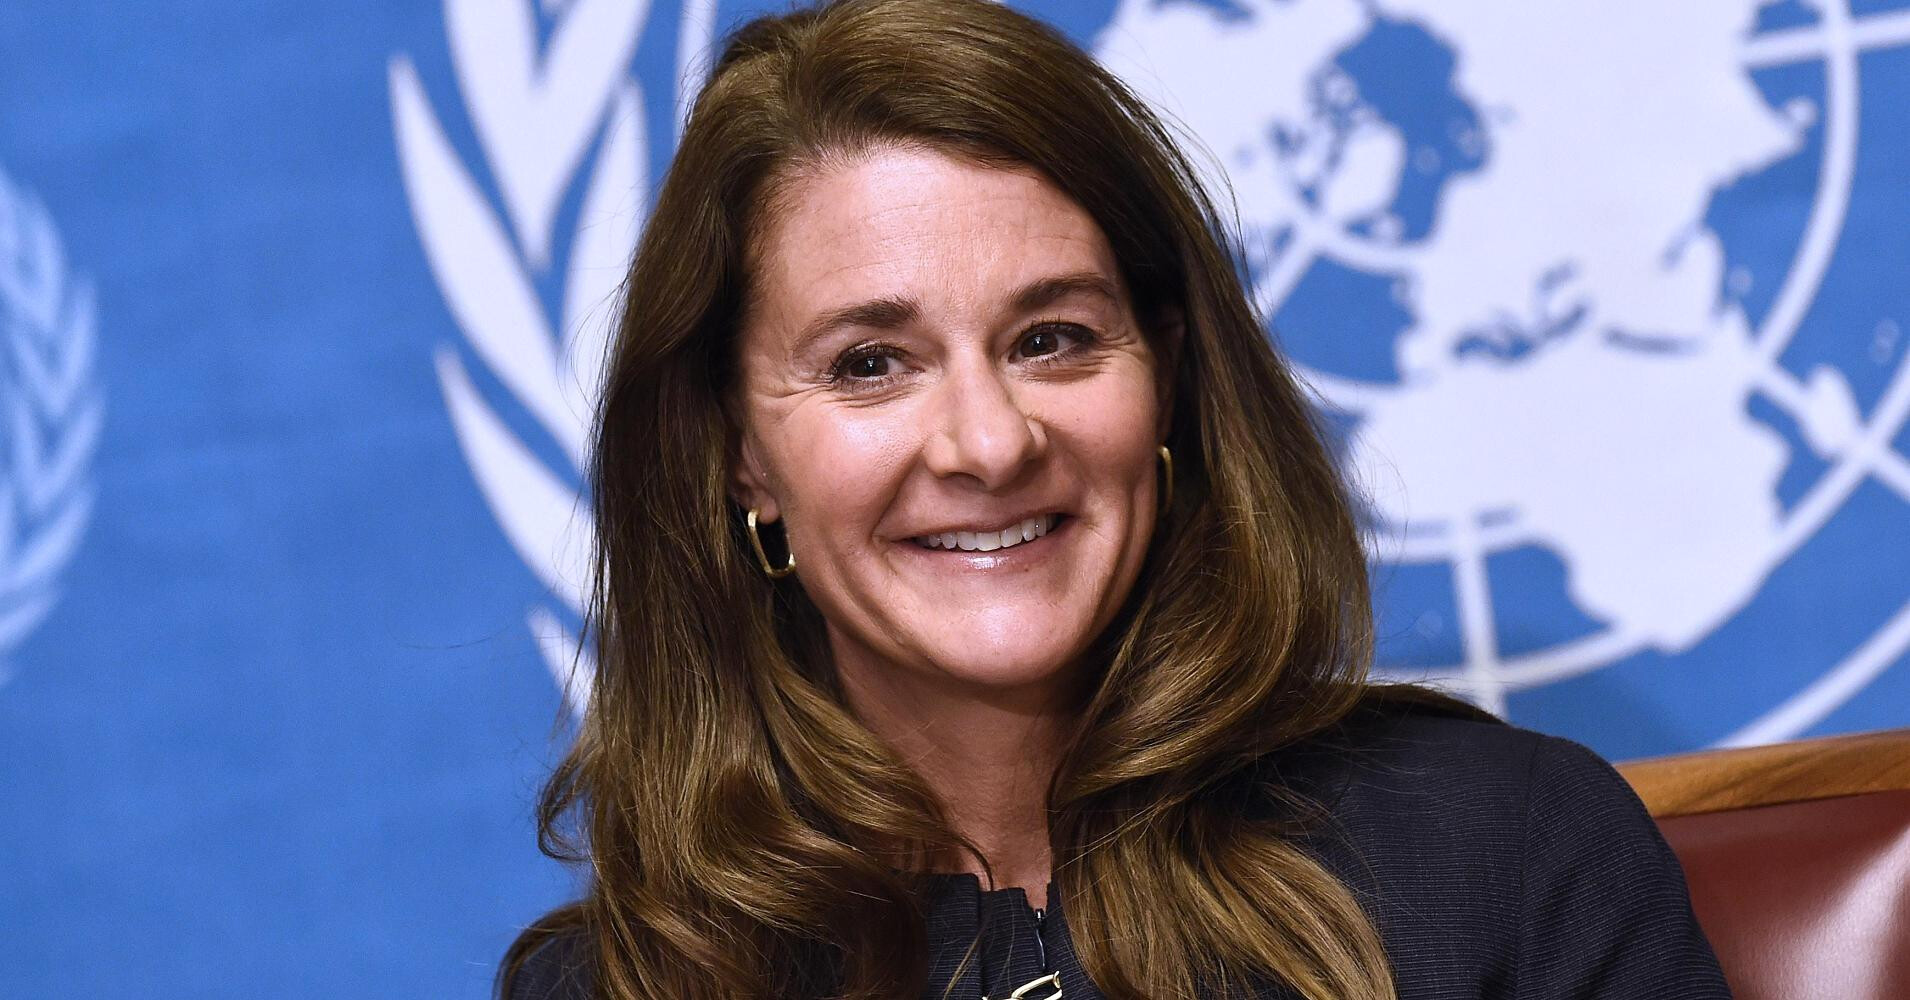 Melinda-Gates-as-10-mulheres-mais-influentes-do-mundo